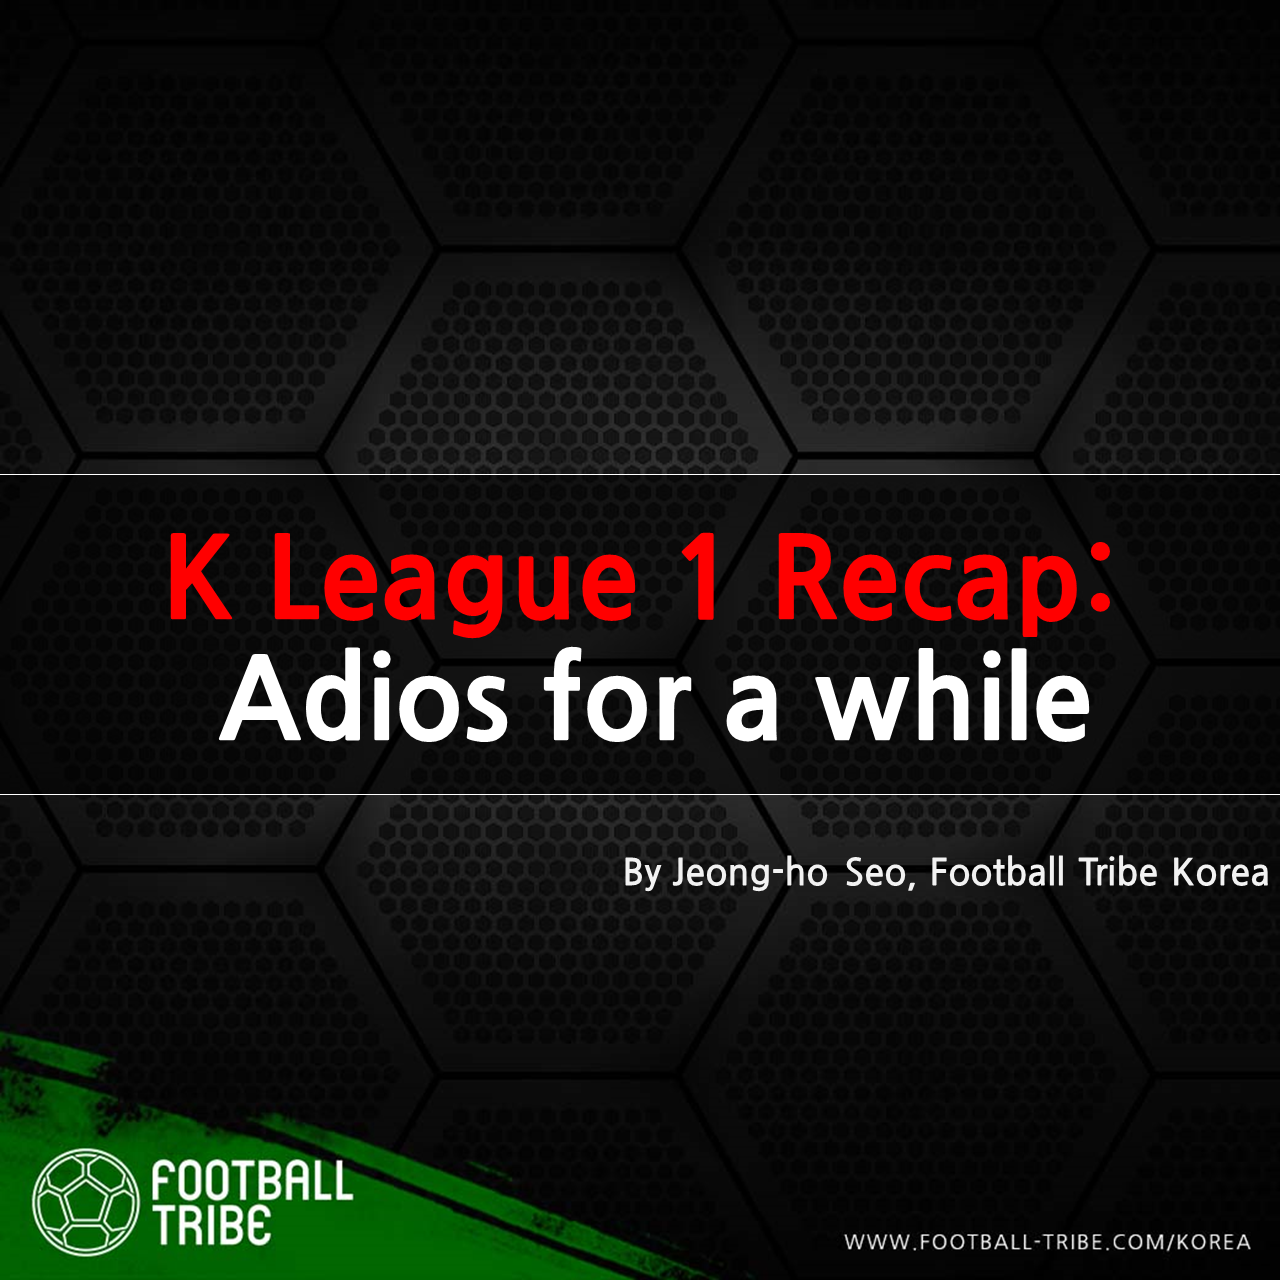 K League 1 Recap: Adios for a while